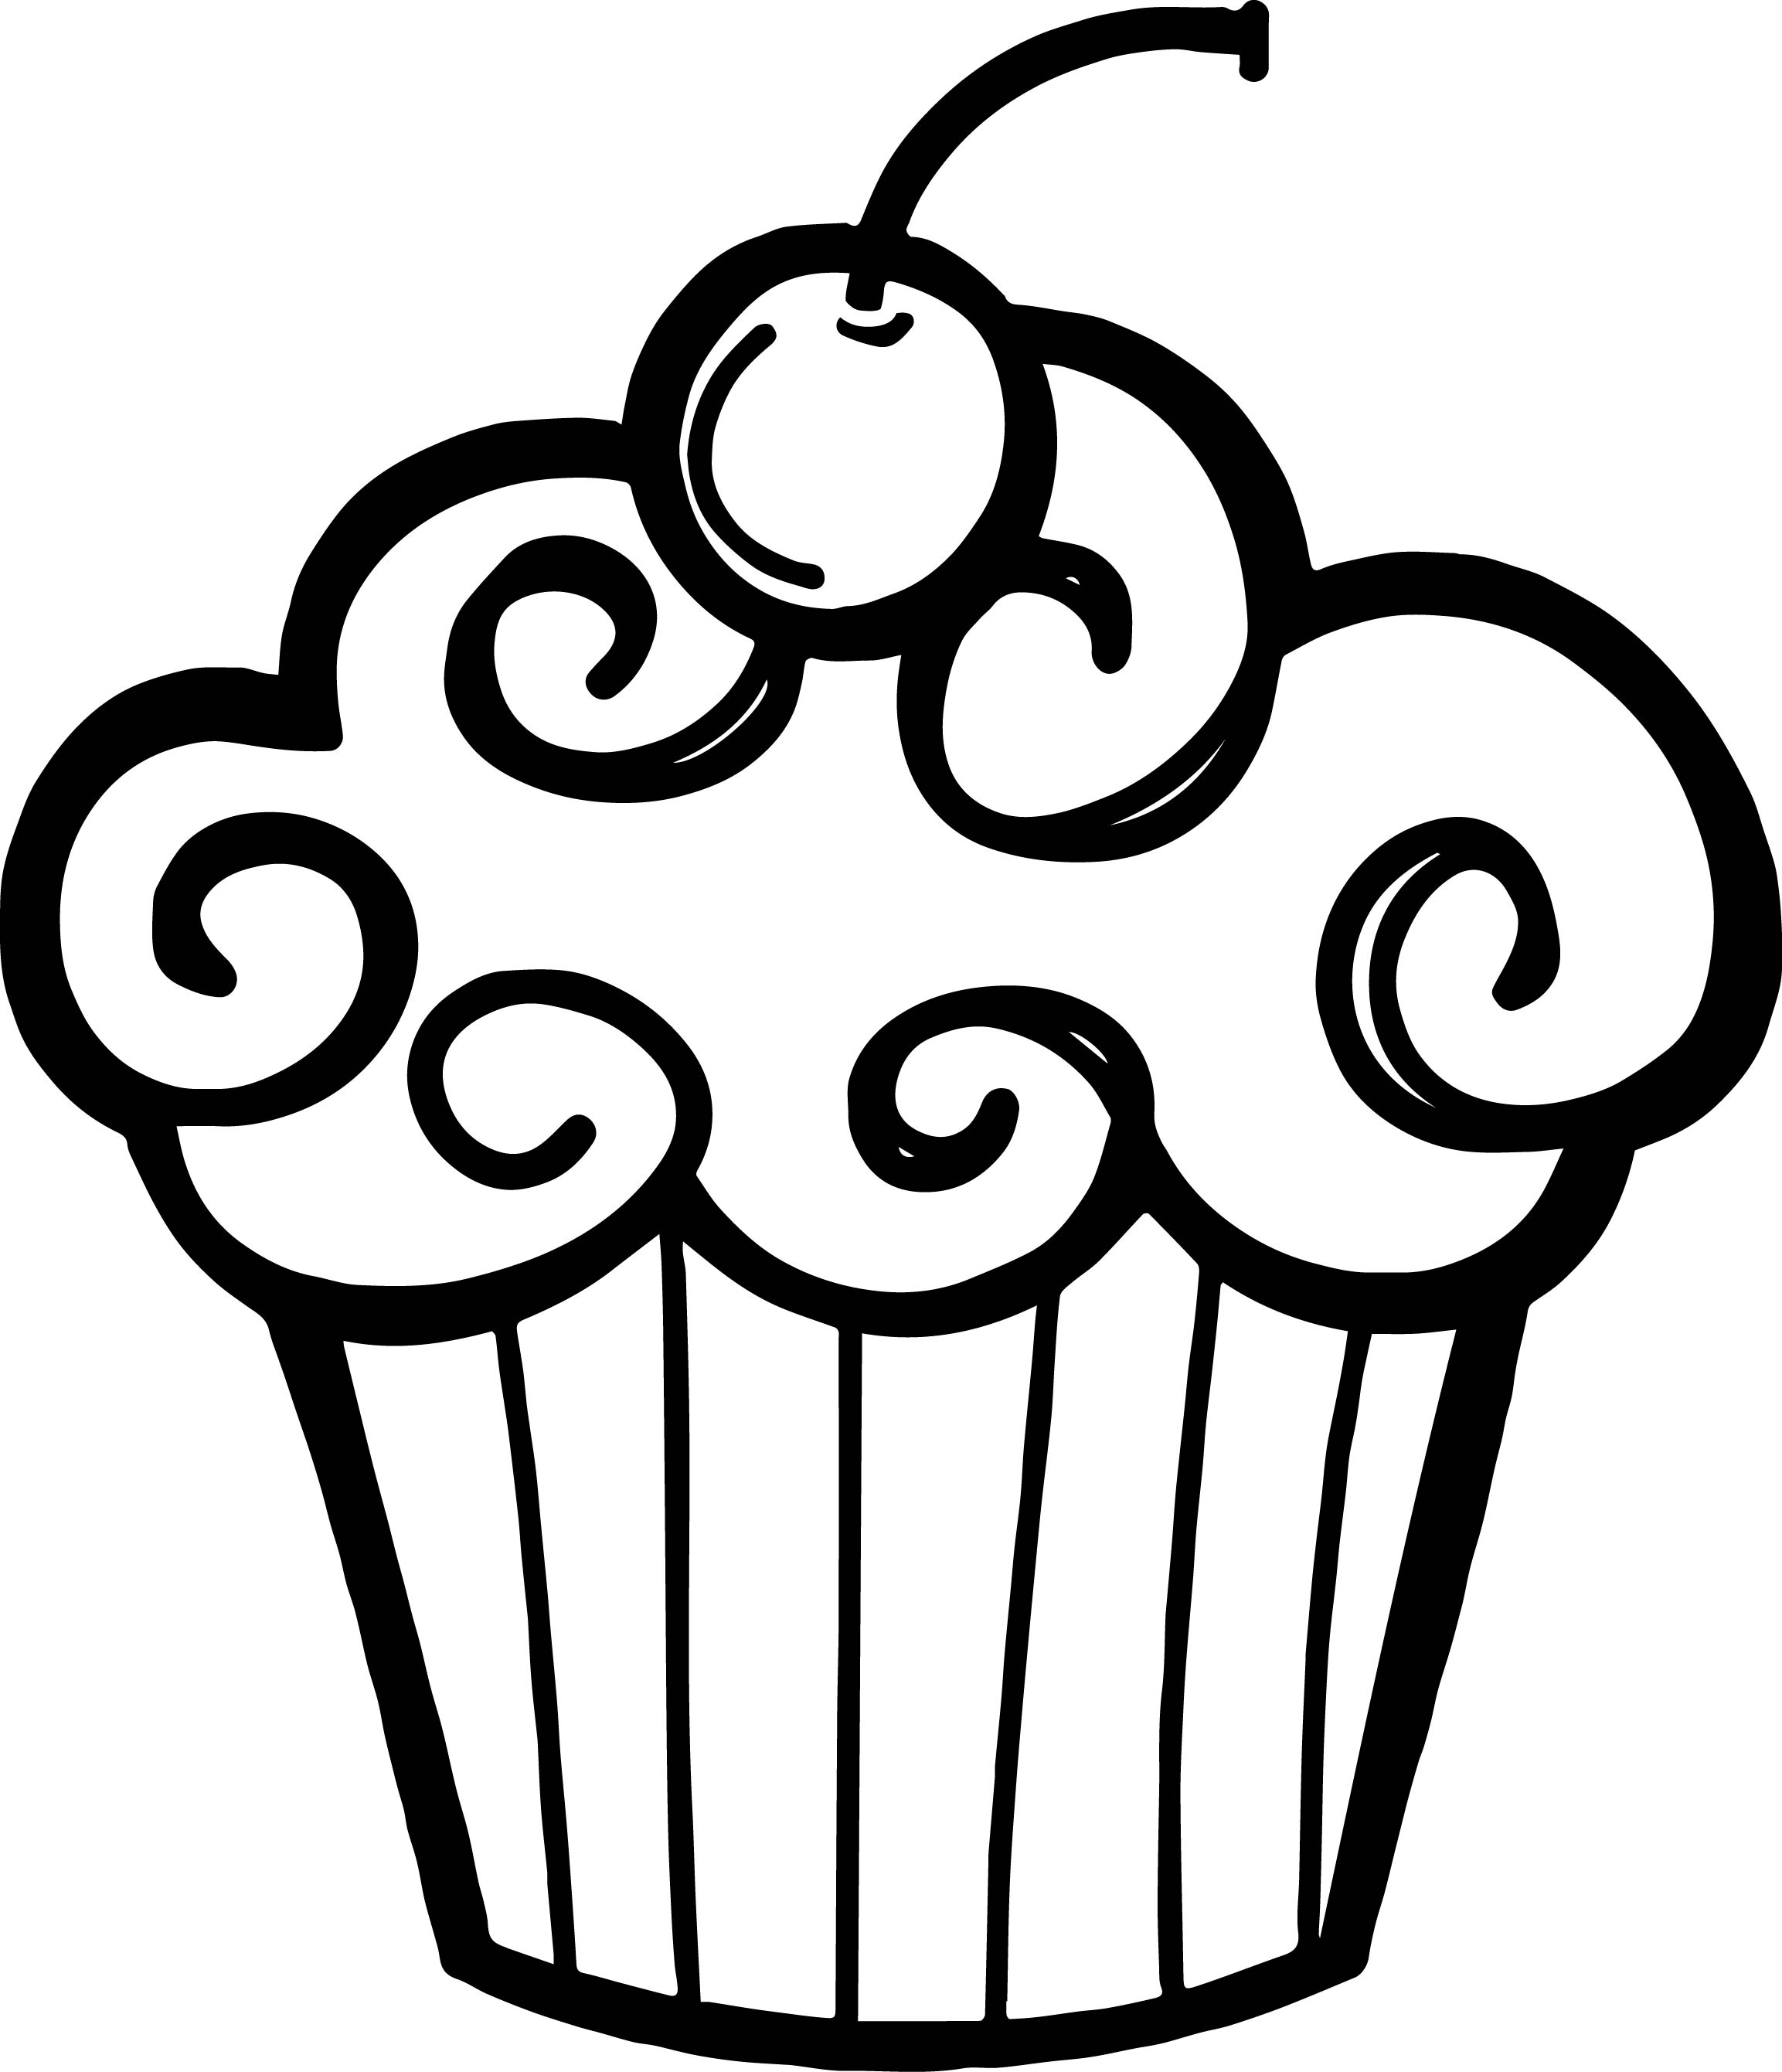 2306x2681 Birthday Cup Cake Clipart